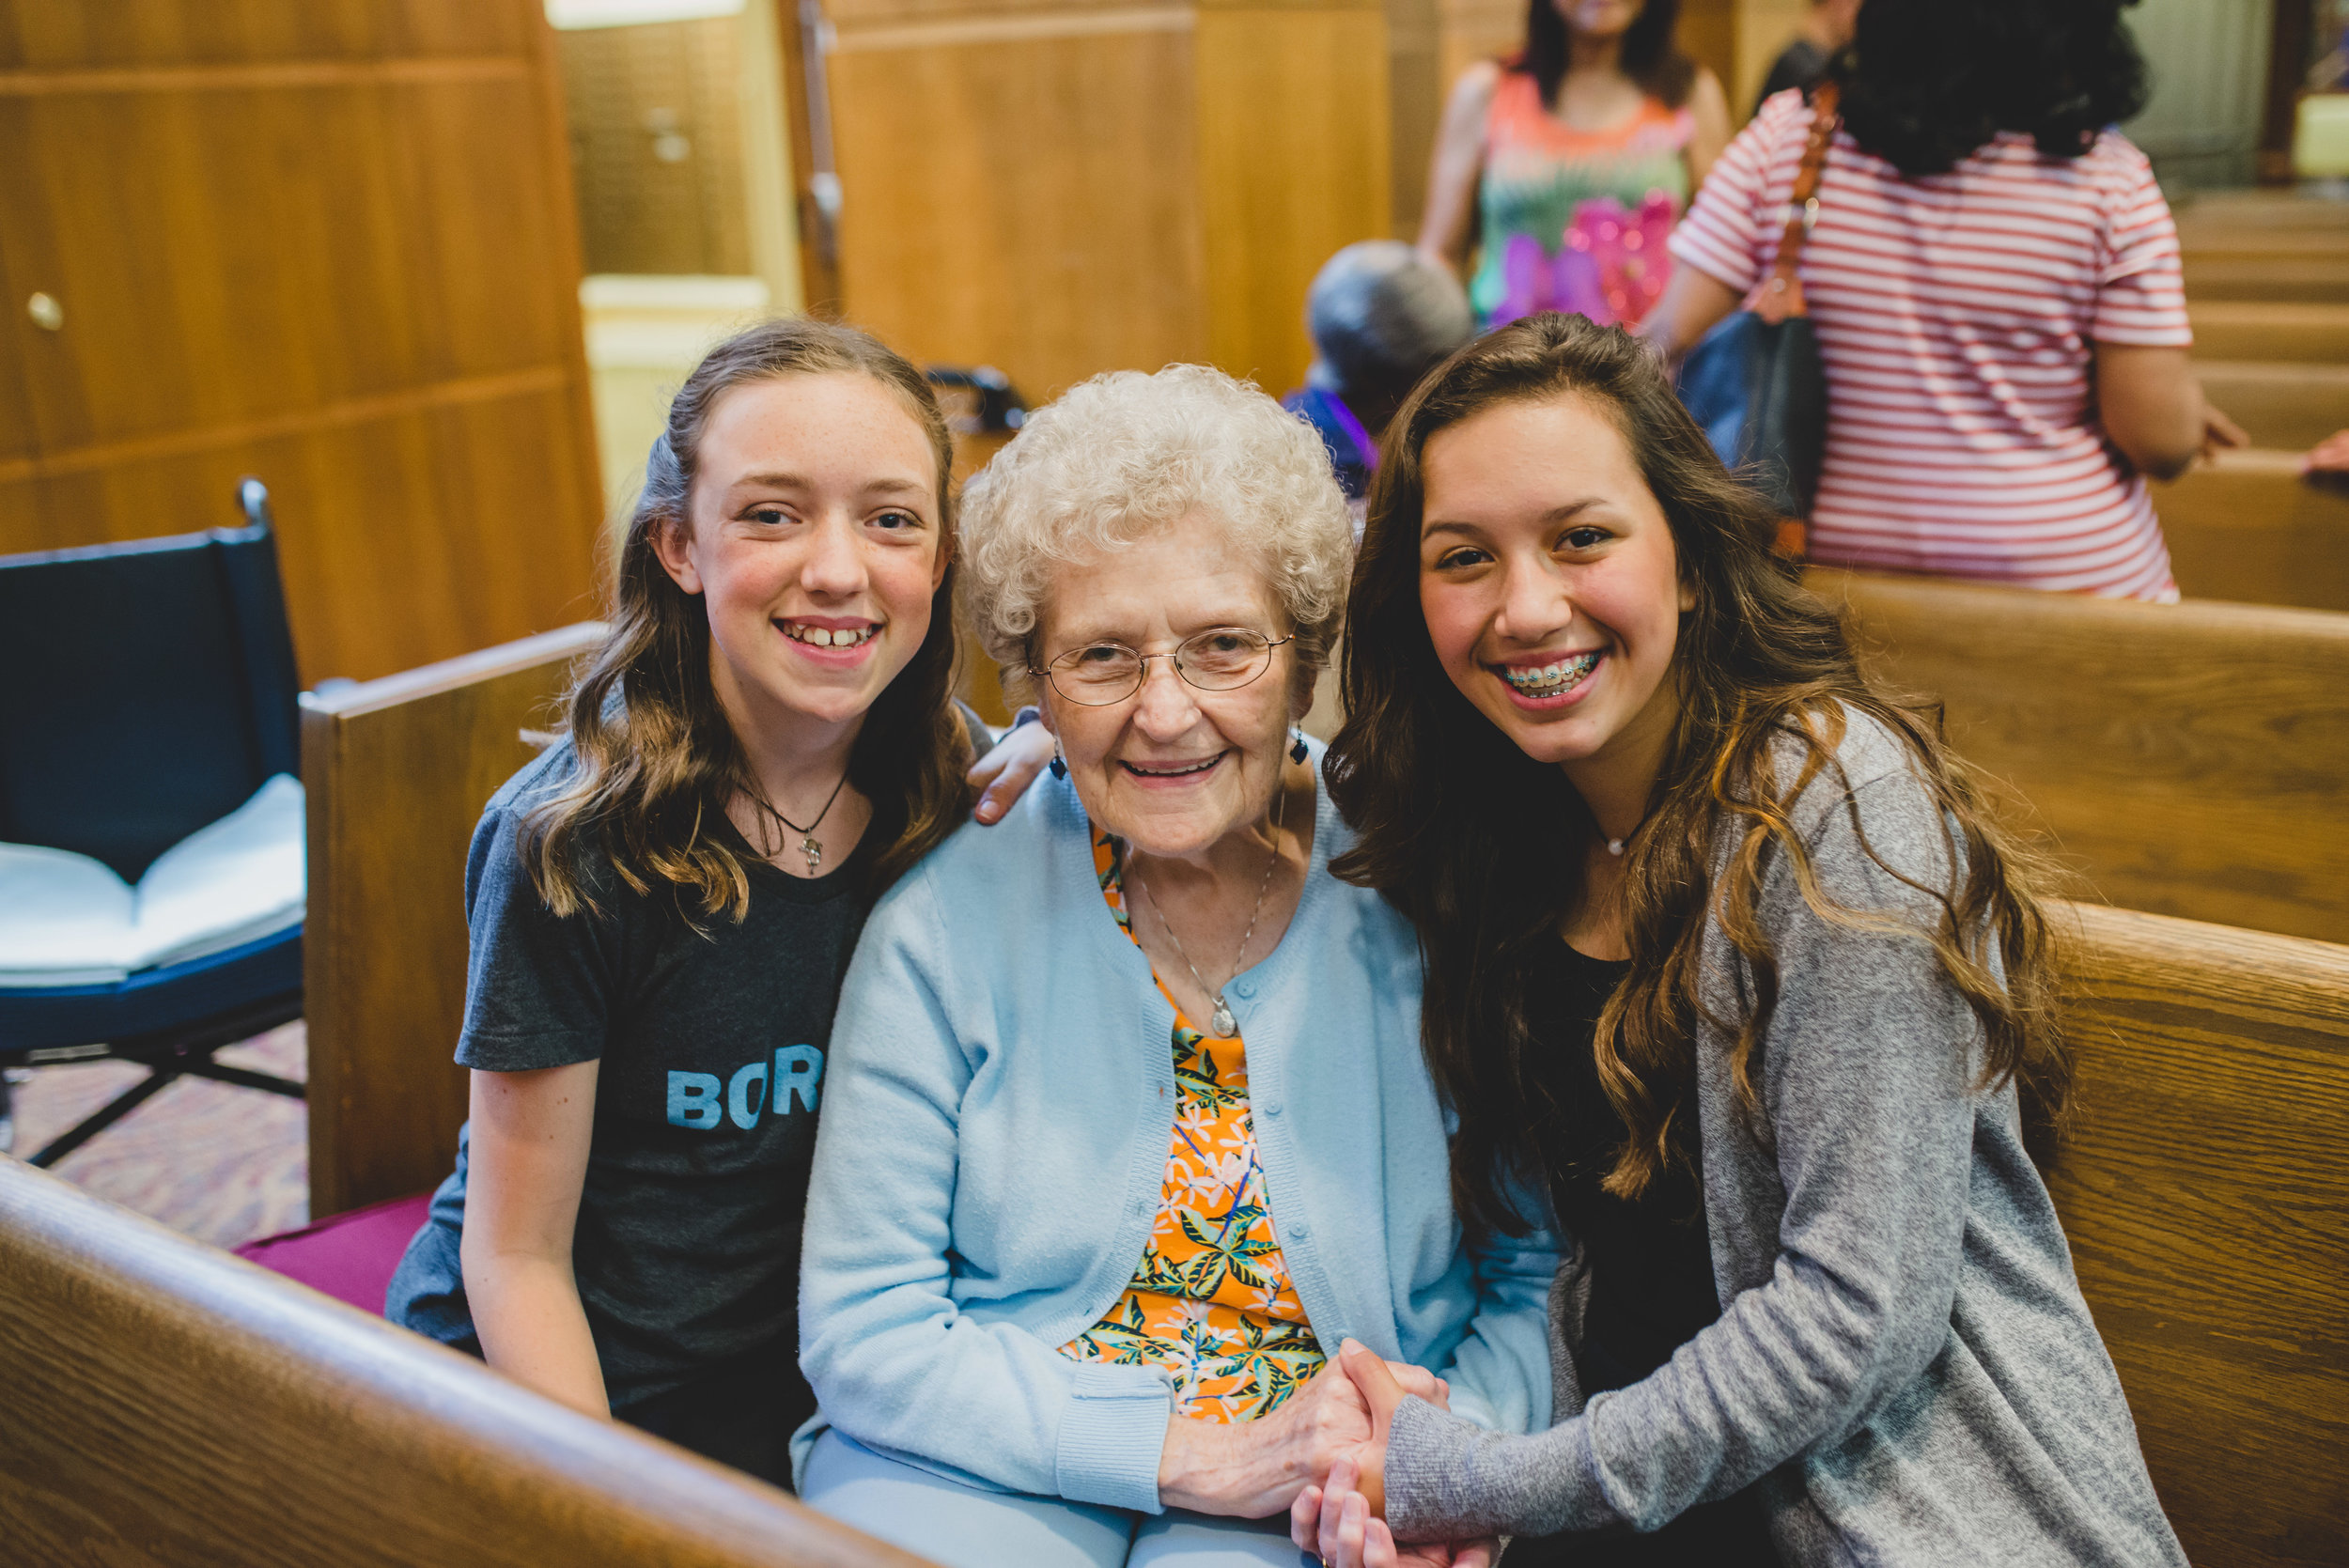 One of the most impactful experiences for the girls was getting to sit with the residents and hear how the show was a blessing to them.